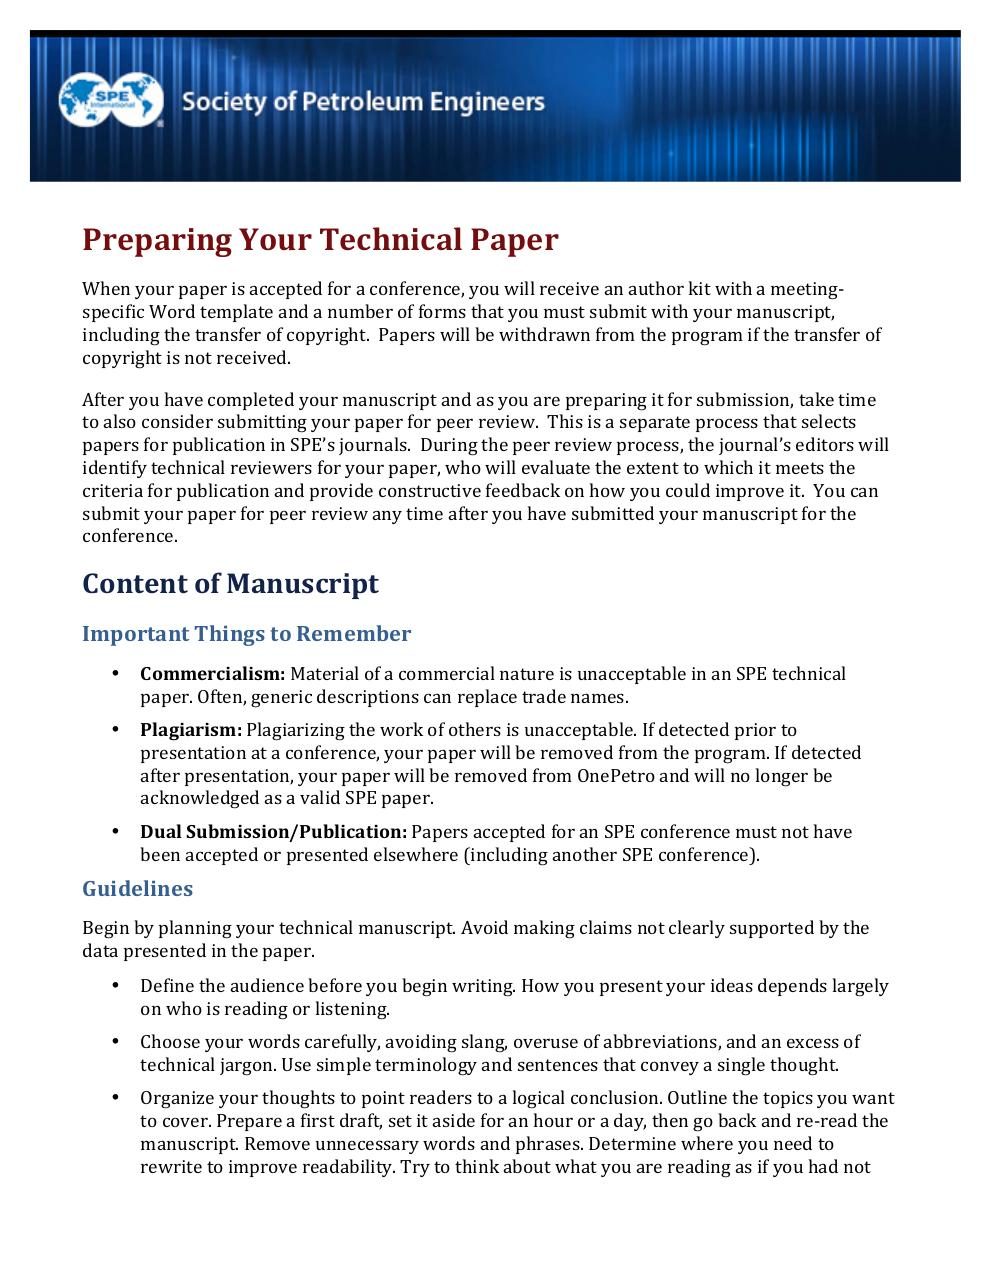 How to prepare your technical paper.pdf - page 1/4